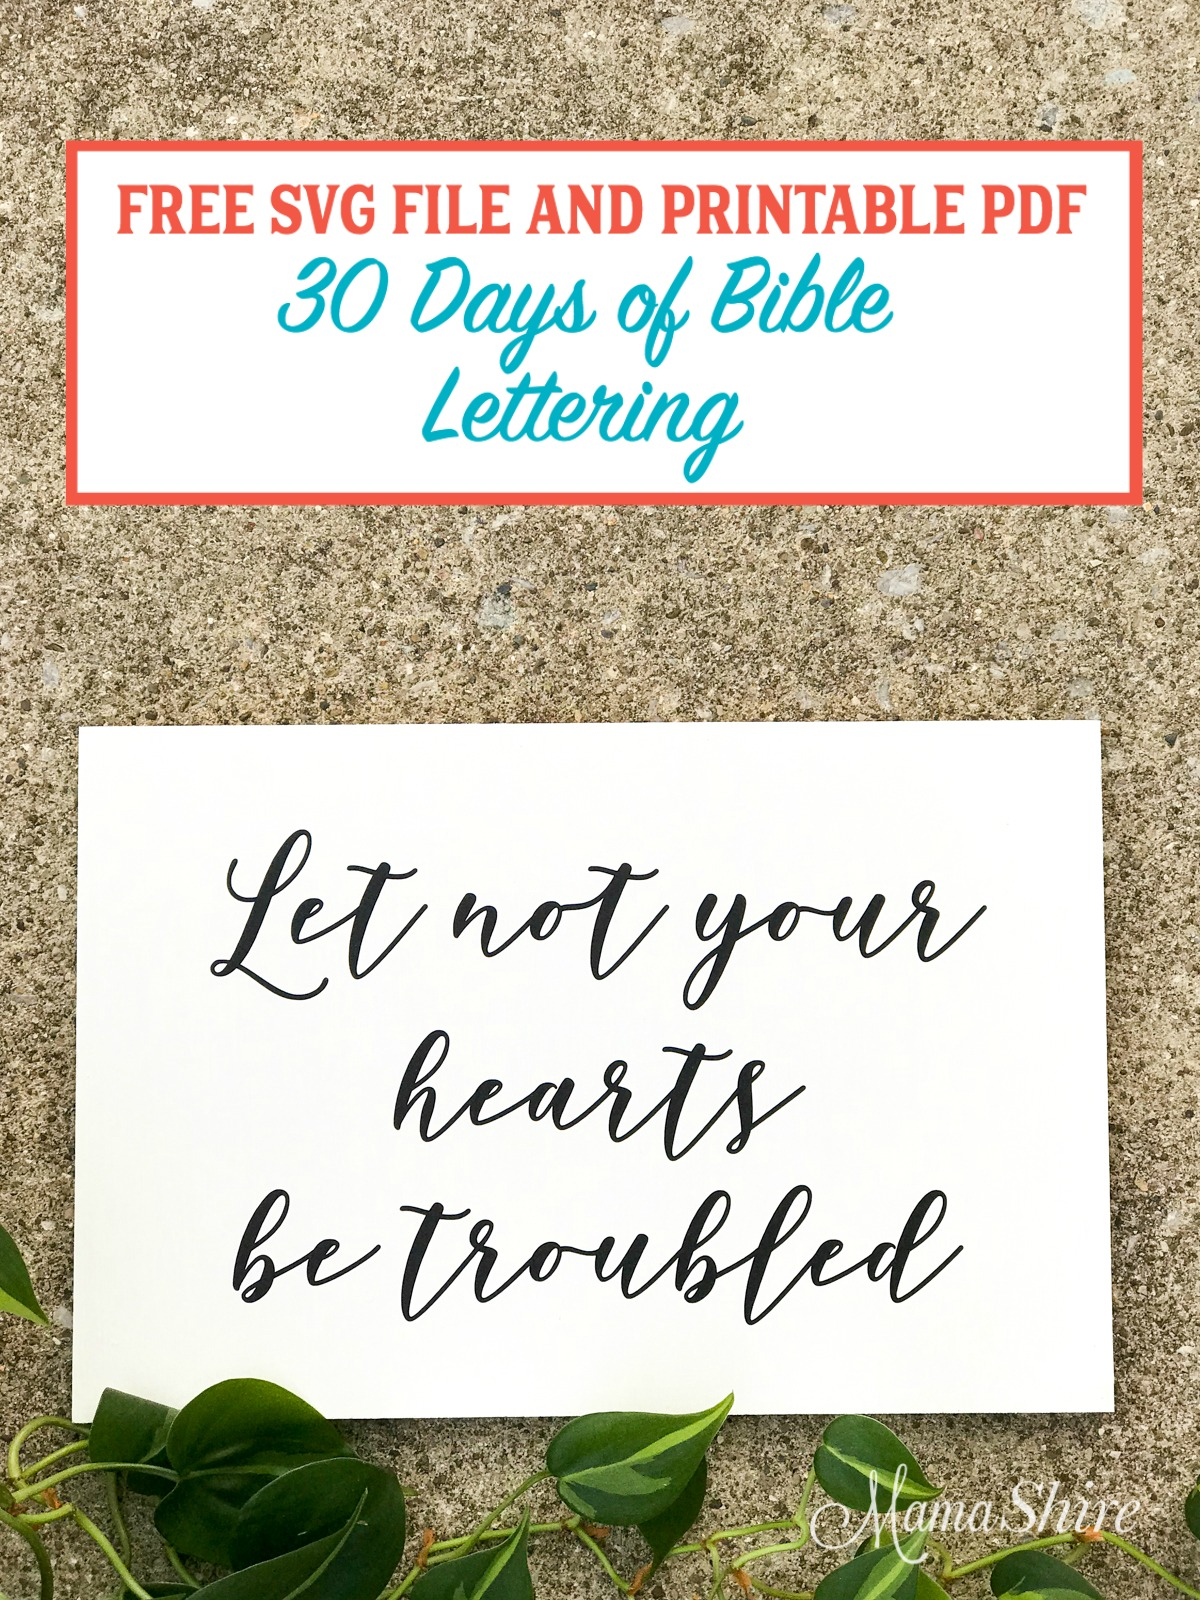 Let Not Your Hearts Be Troubled Bible Lettering Wood Sign